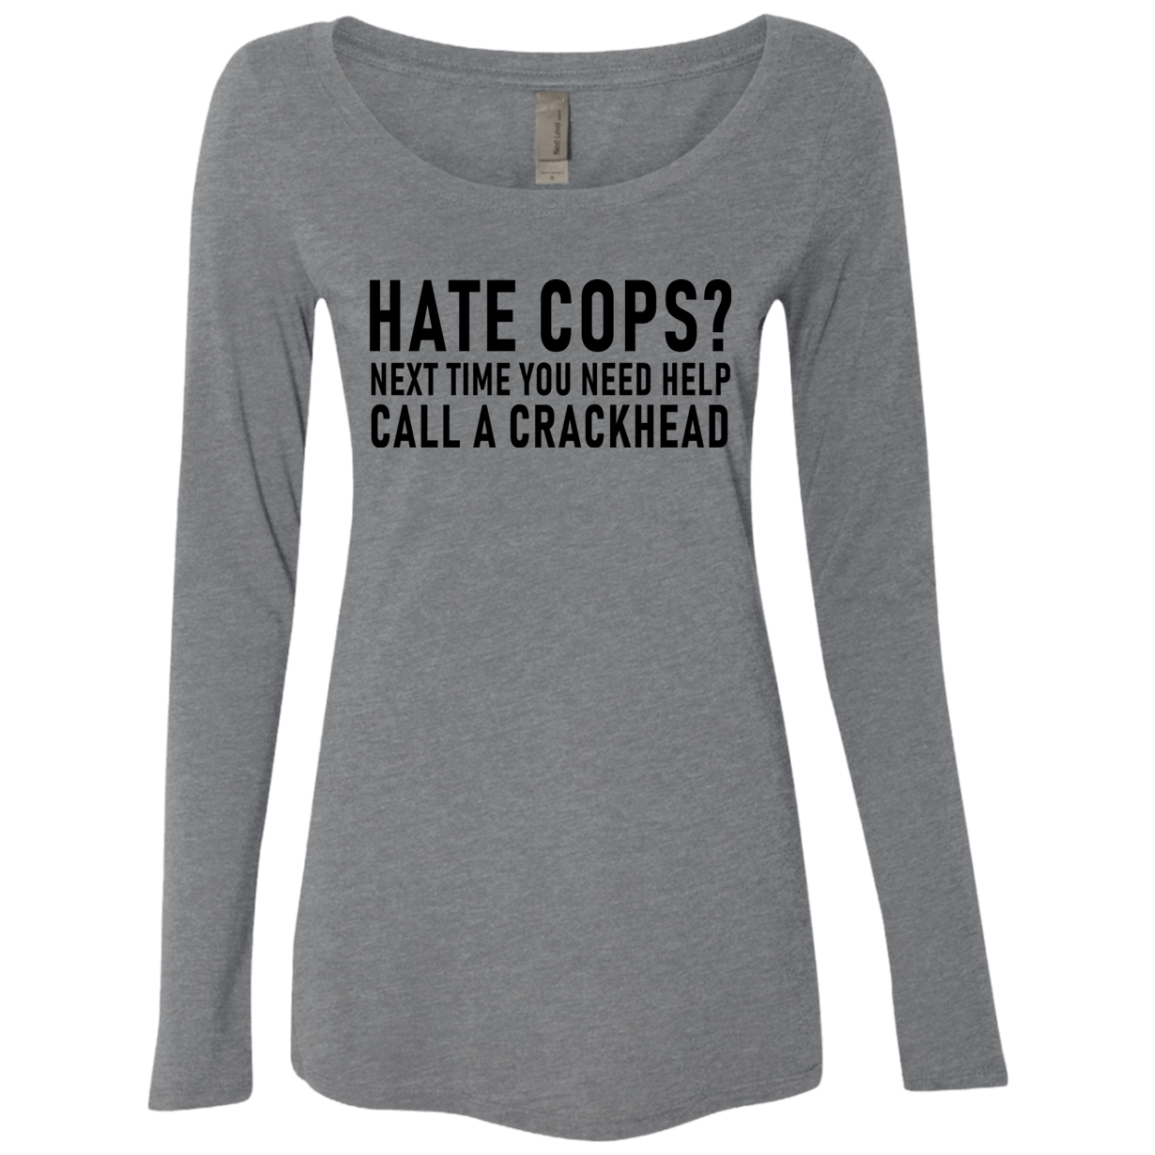 Hate Cops Next Time You Need Help Call A Crackhead Women's Long Sleeve Tee